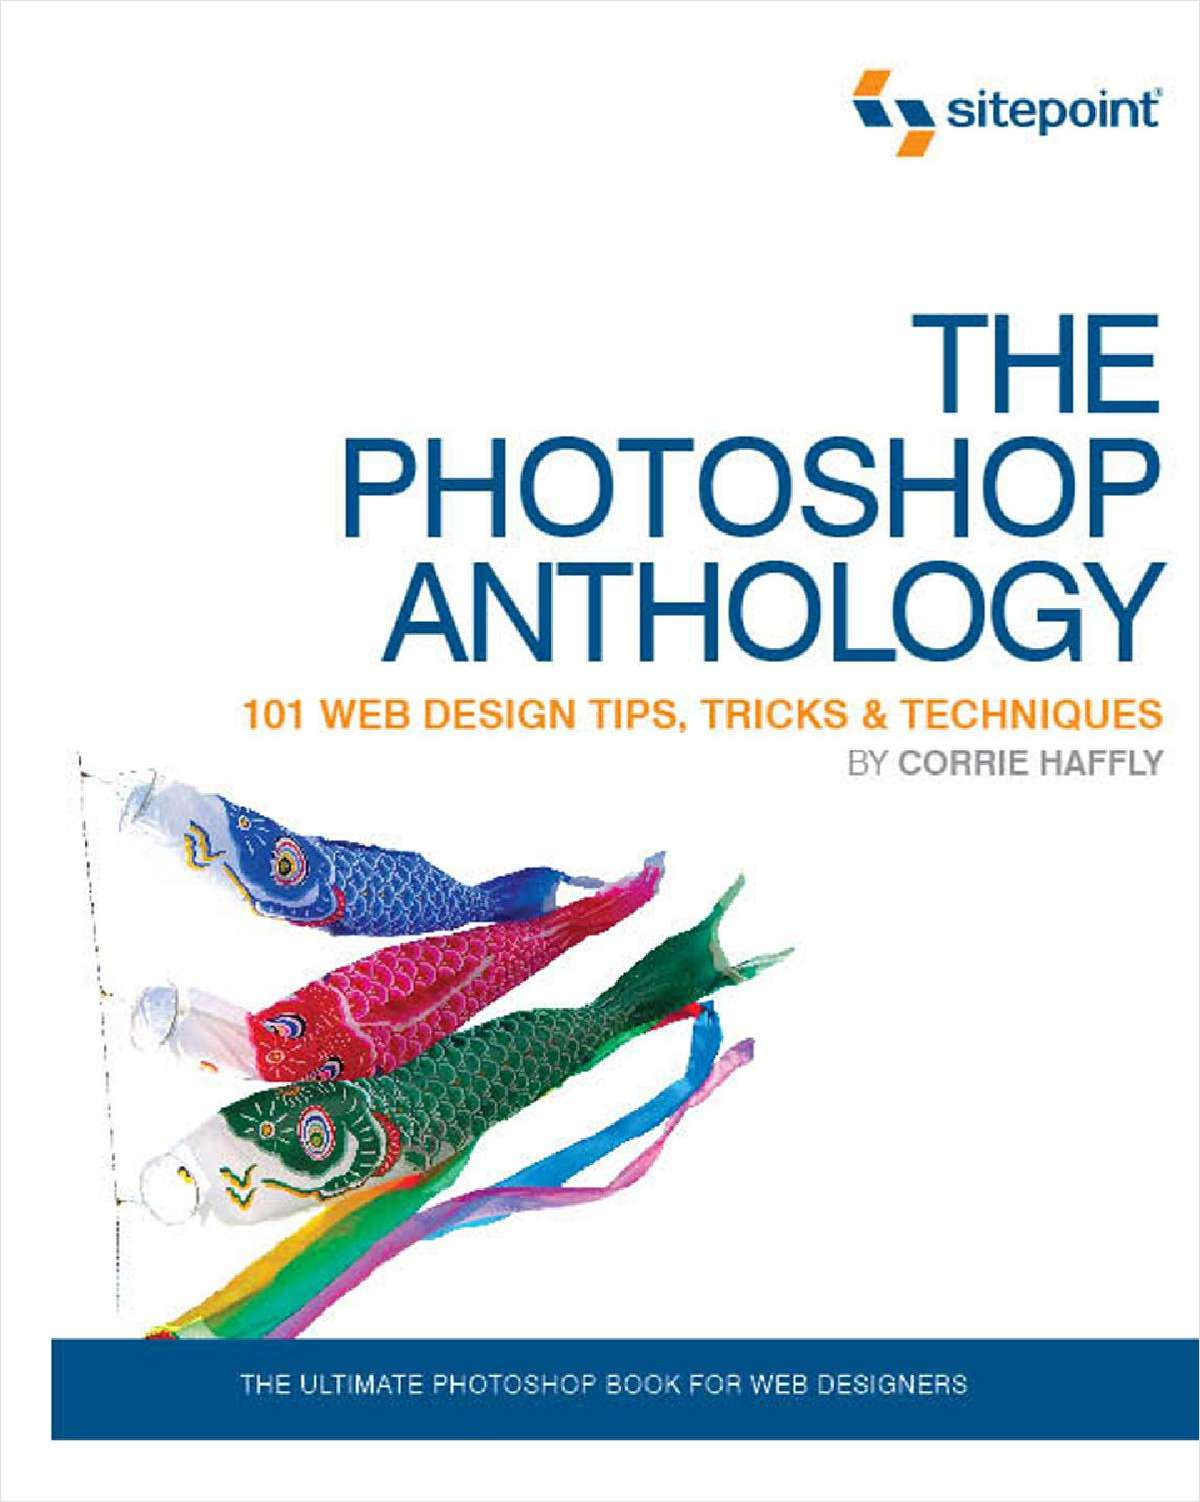 The Photoshop Anthology: 101 Web Design Tips, Tricks & Techniques - Free 122 Page Preview